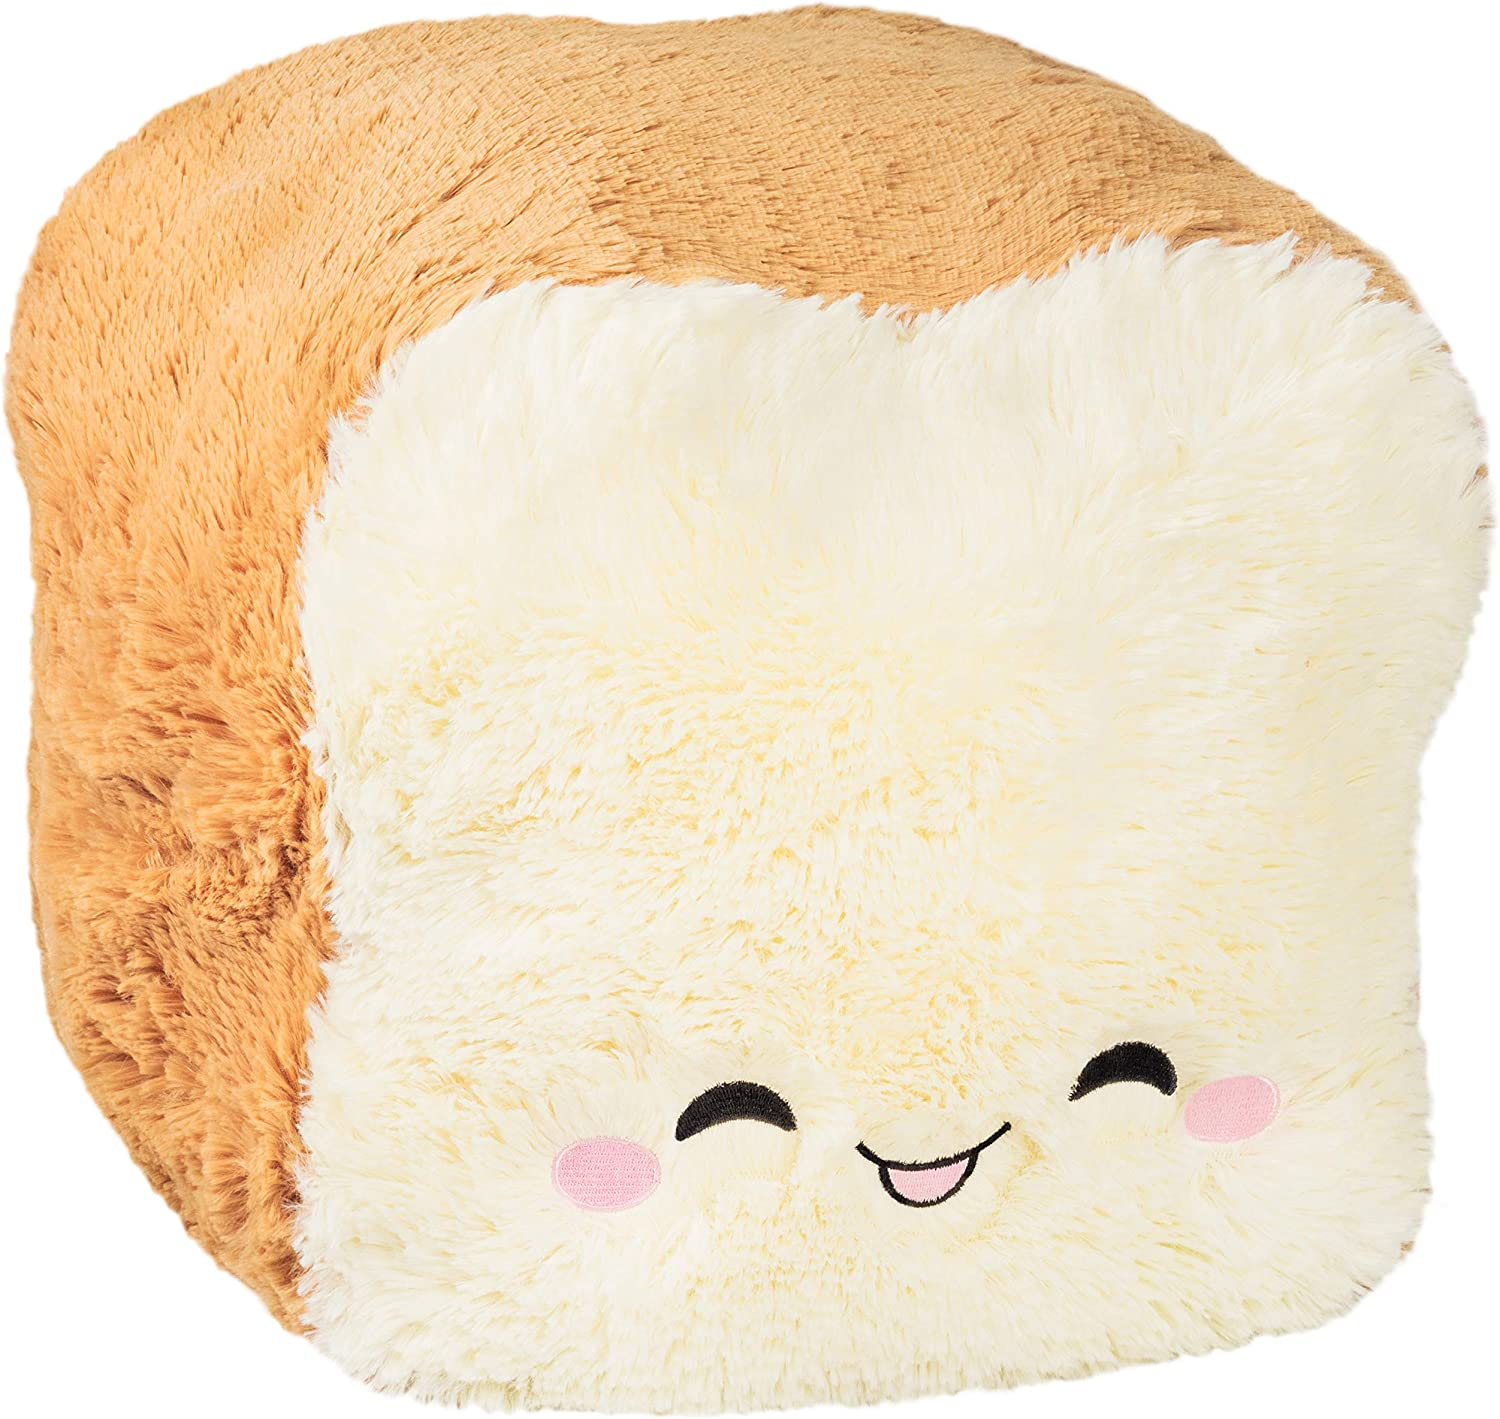 Squishable / Comfort Food Loaf of Bread 15